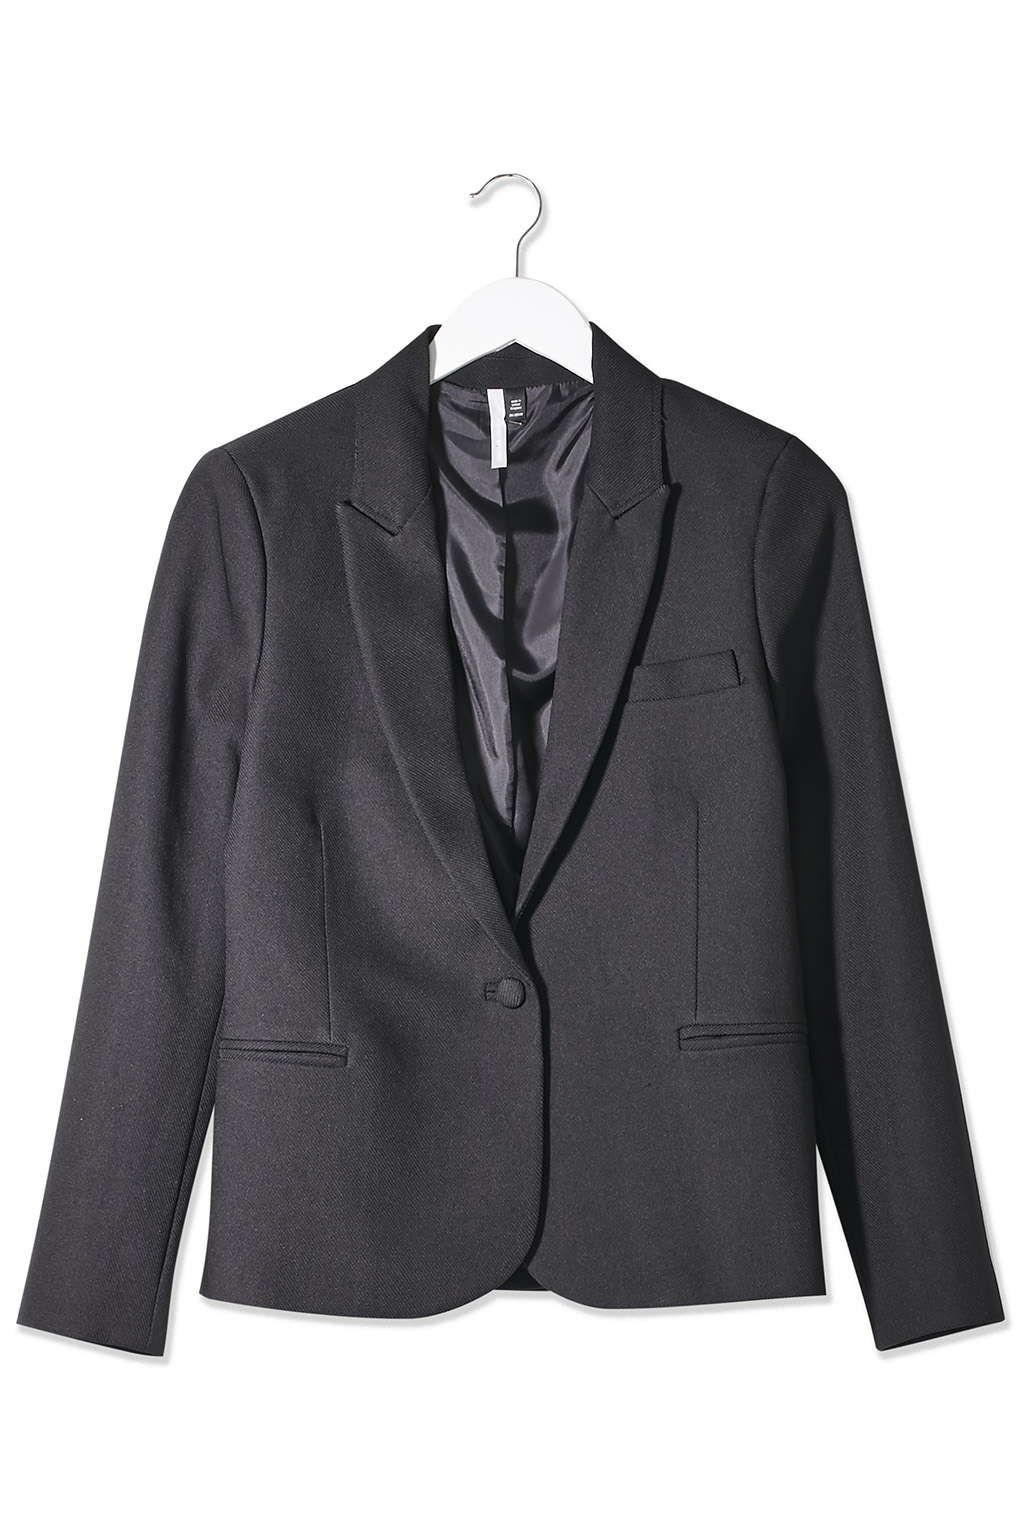 Textured Fitted Blazer by Boutique - Topshop